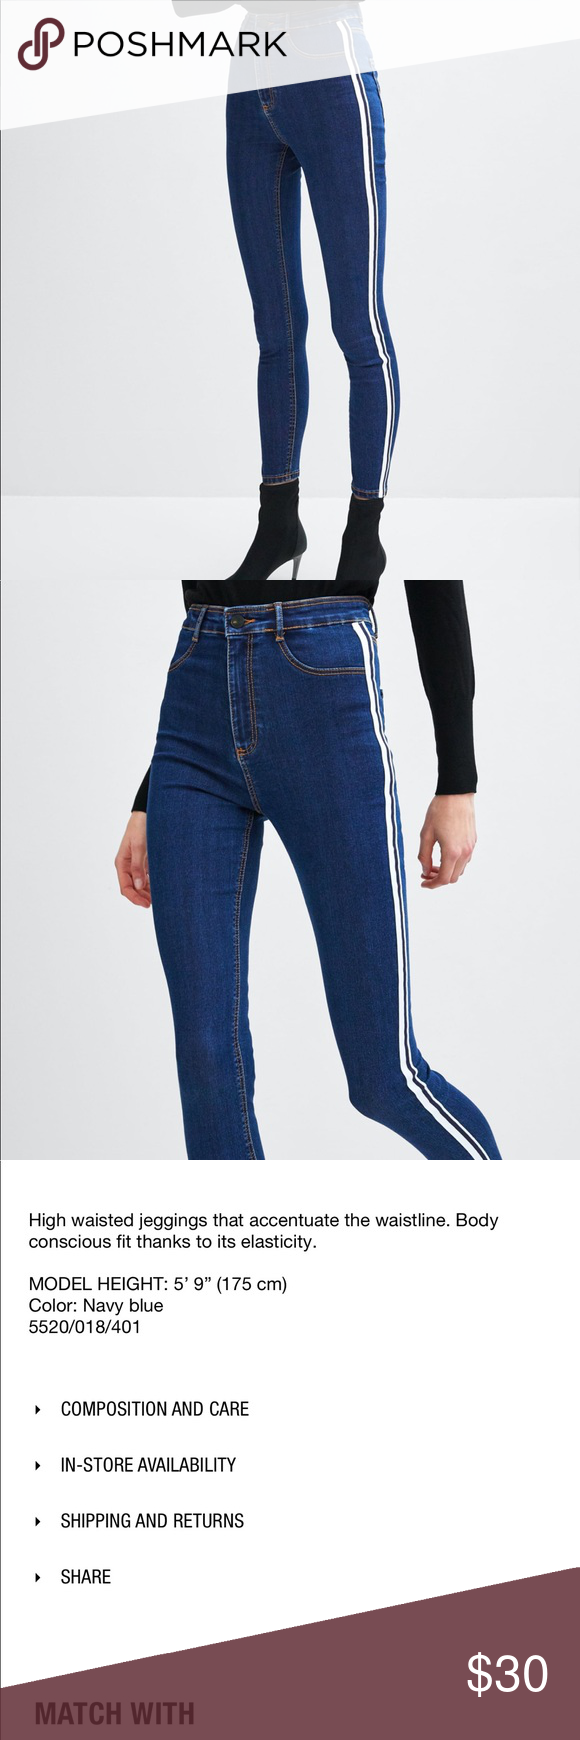 6012460f Zara high rise jeans with side stripe Brand new Zara high rise elastic jeans  with side strip. US size 4. Description in photos Zara Jeans Skinny